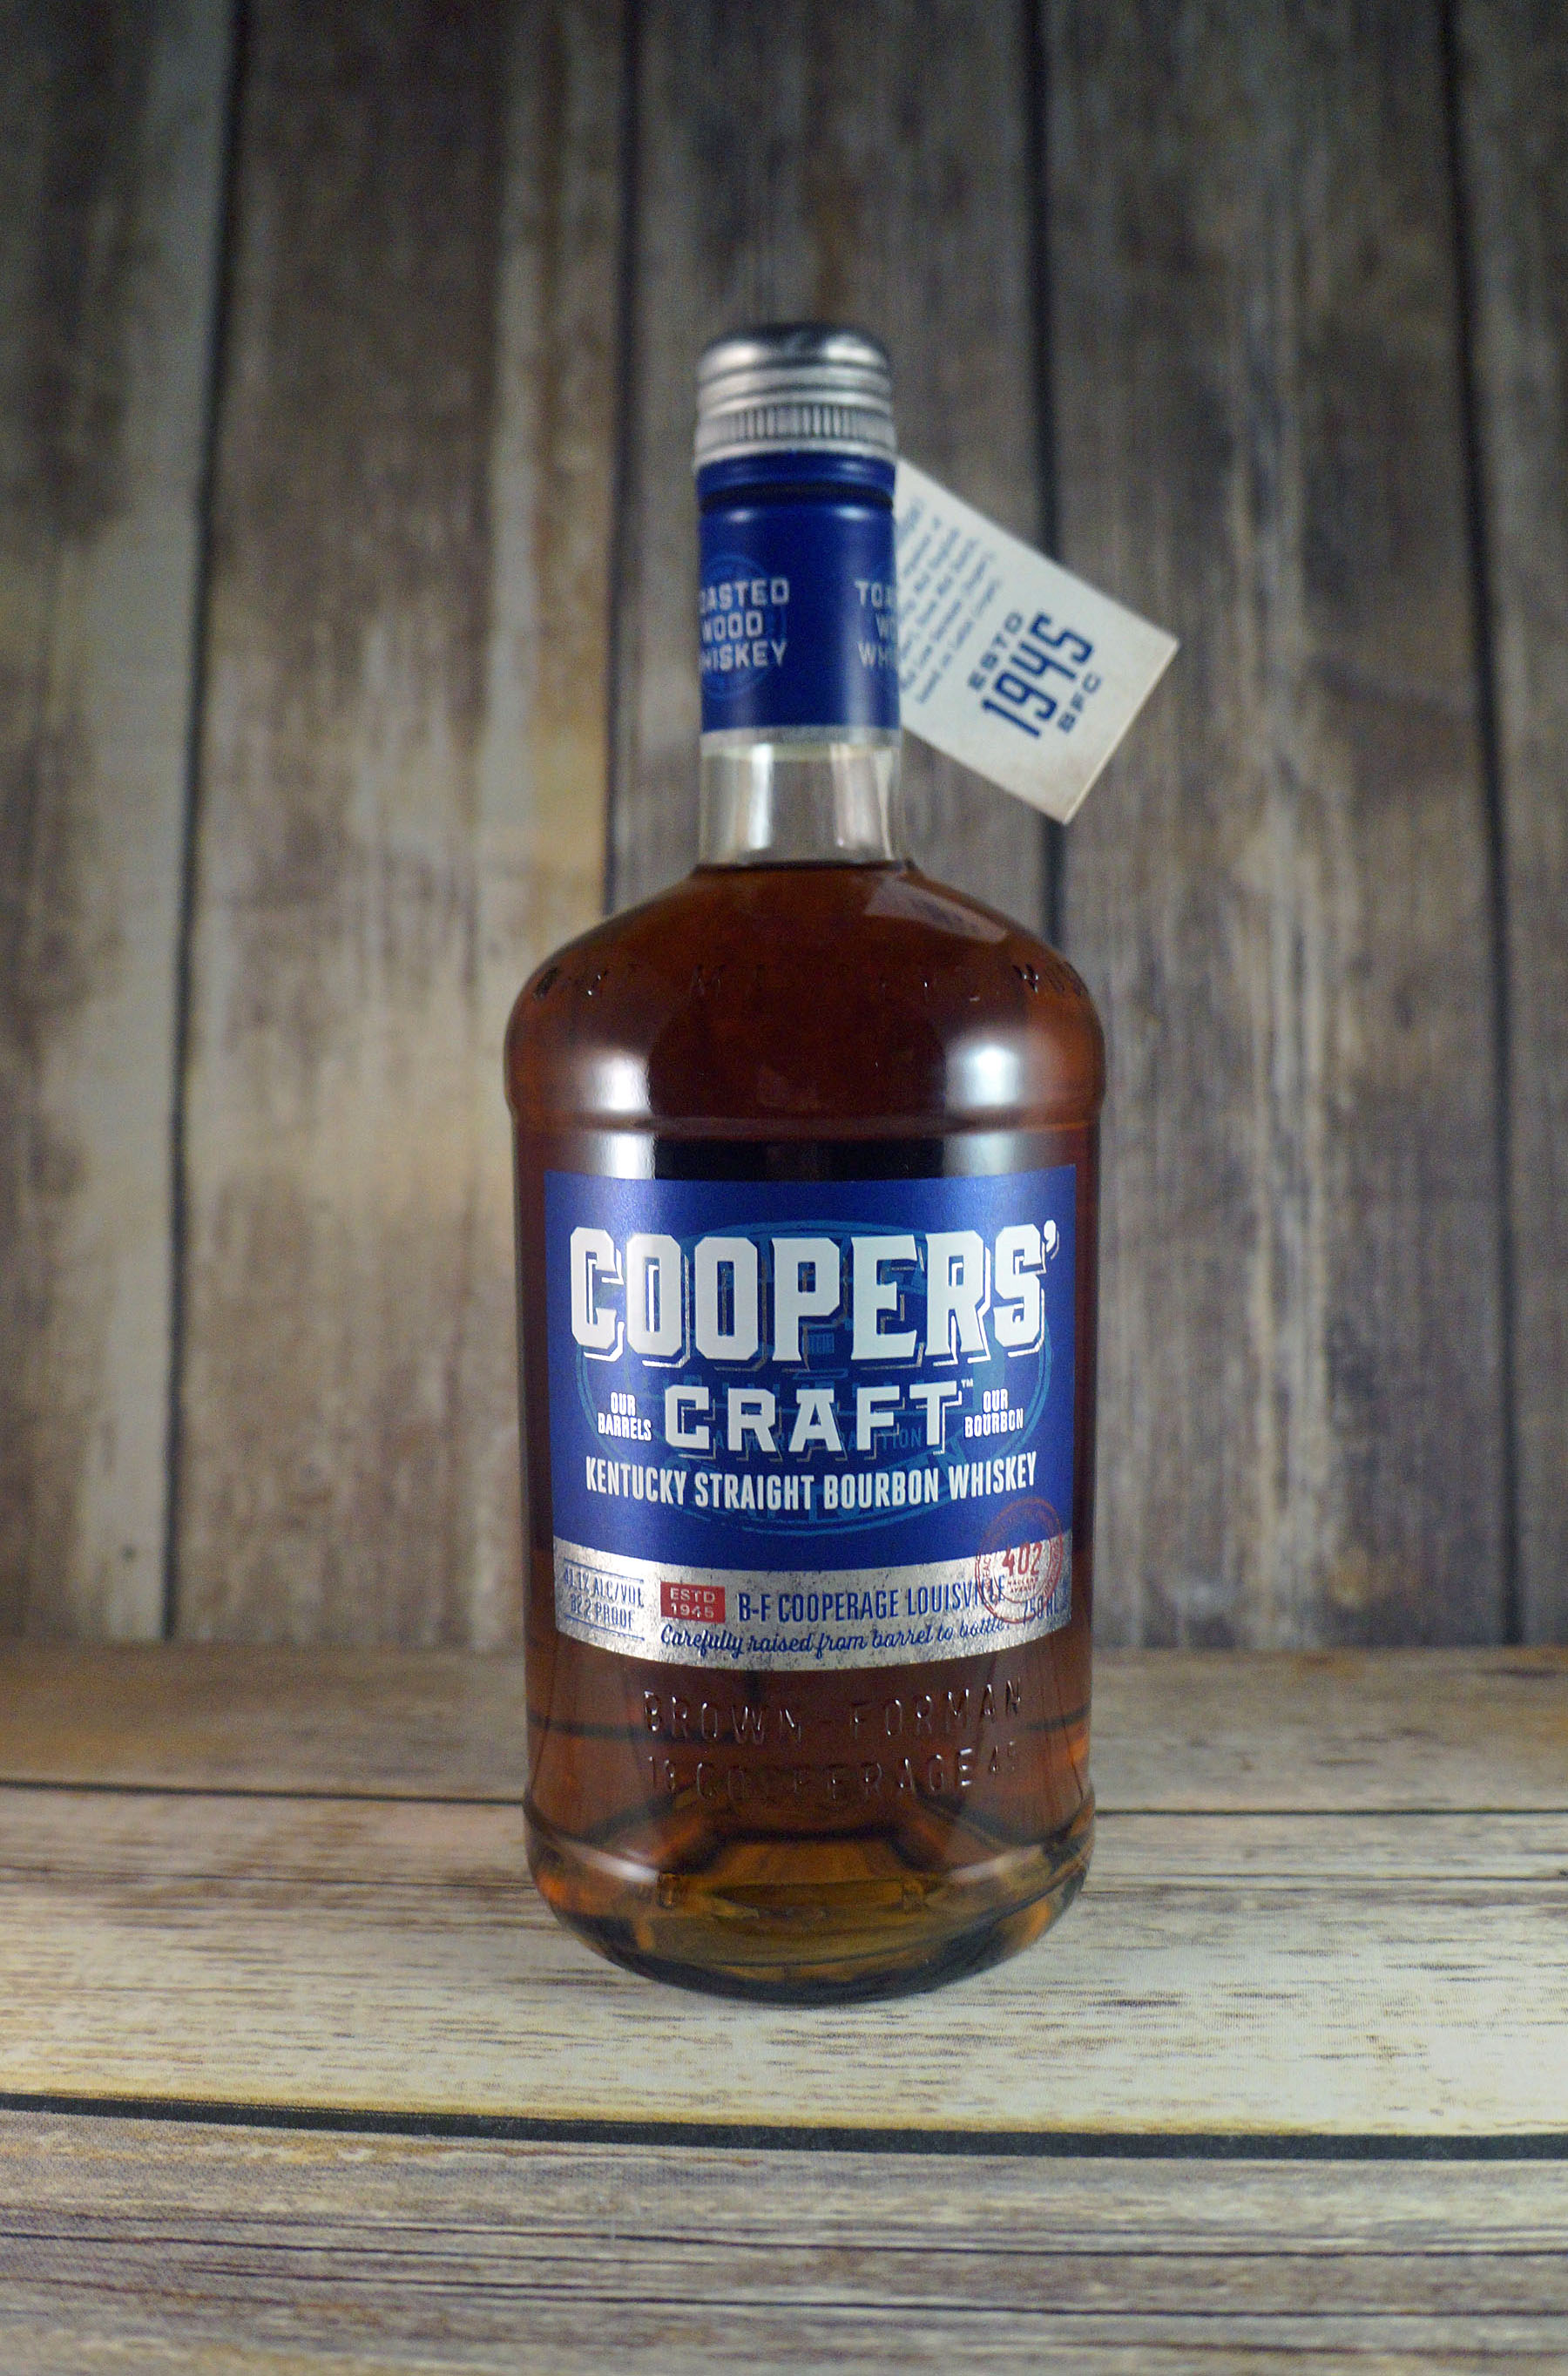 Coopers 39 craft bourbon review modernthirst for Coopers craft bourbon review